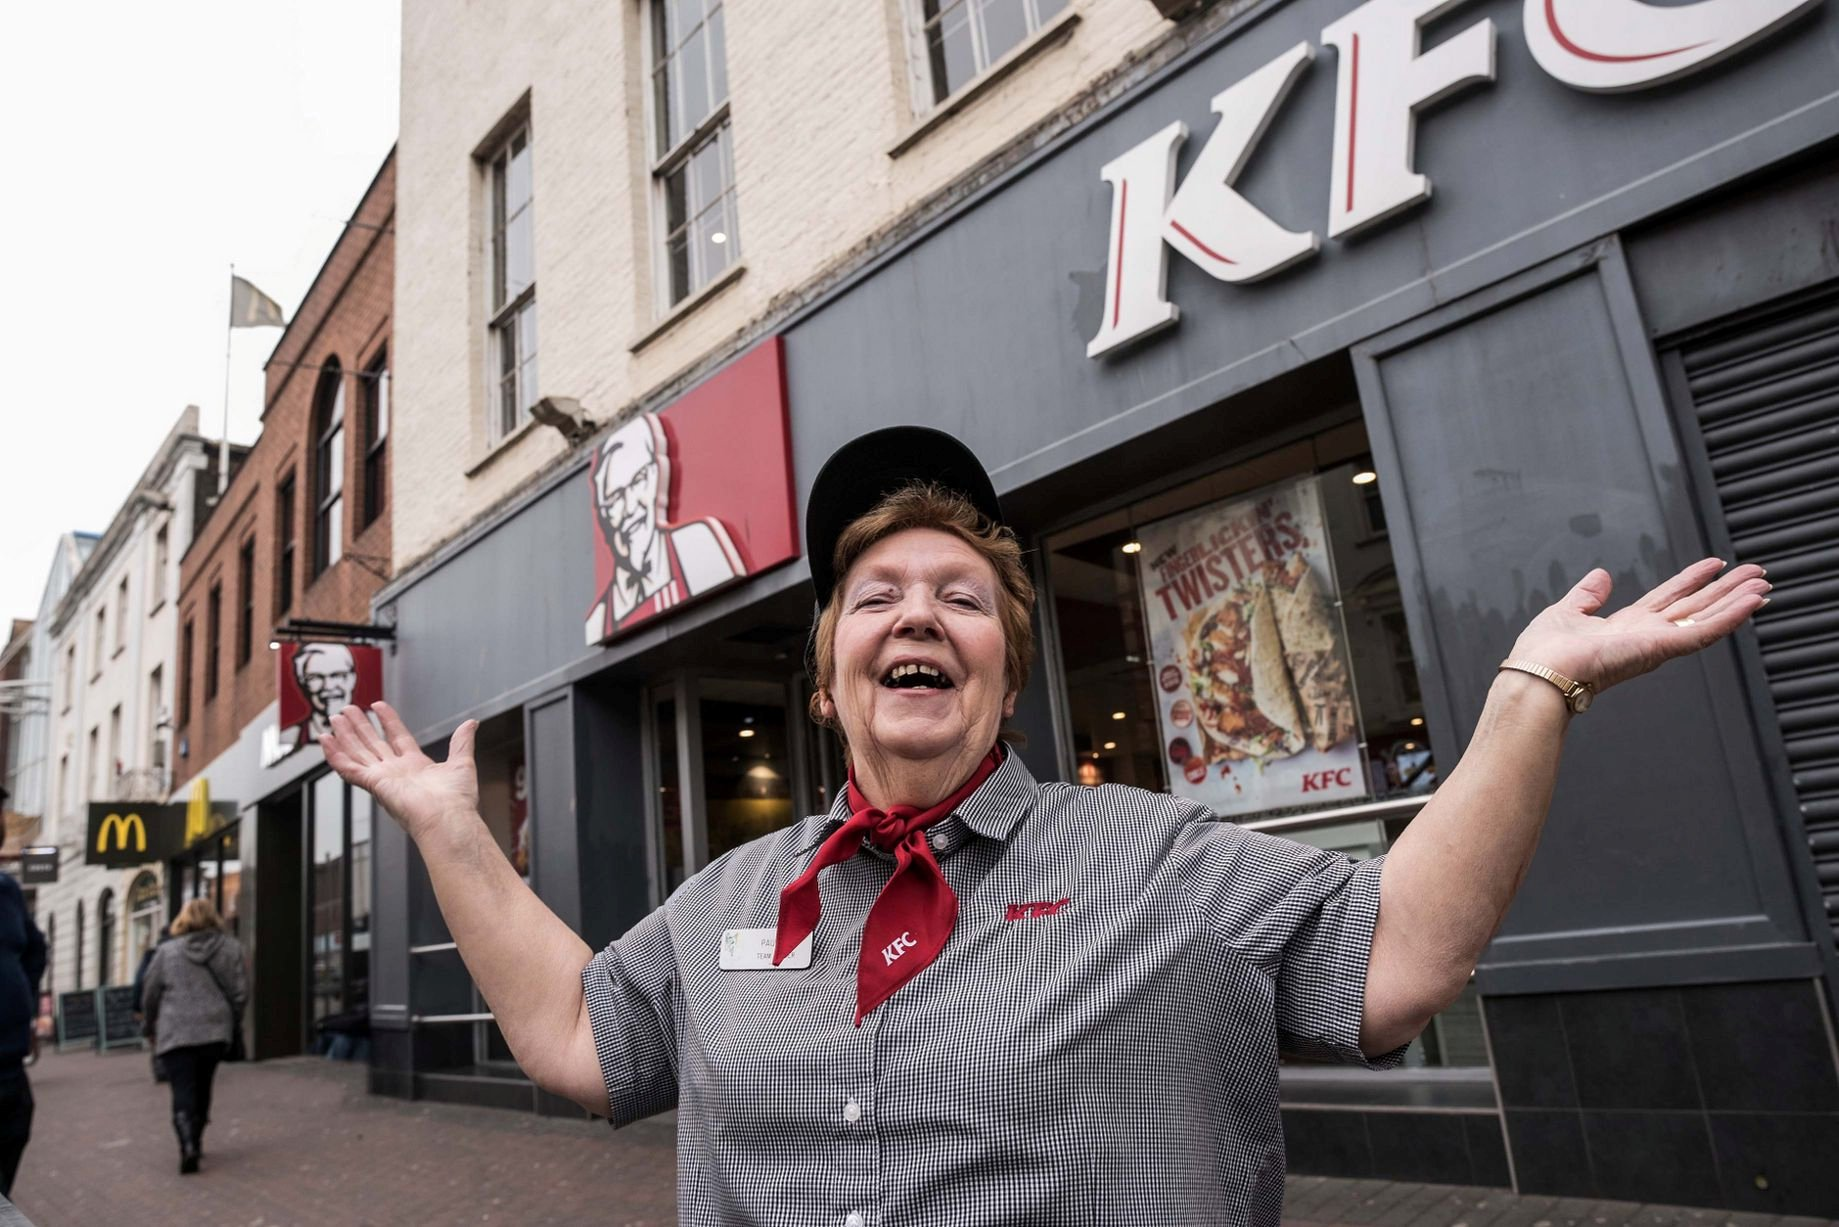 """Long serving KFC employee Pauline has worked in Taunton's KFC for an incredible 41 years. See SWNS story SWBRkfc; A woman has worked at KFC for 41 YEARS serving up over five MILLION drumsticks - and has no plans to retire. Dedicated Pauline Richards, 68, started at the branch in Taunton in Somerset in 1978. She has worked nearly every possible role at the fast food branch including a cleaner, cashier, supervisor, manager and team leader. Because she """"always serves with a smile"""" and has a """"bit of banter"""" with customers at the East Street branch has become a cult hero in the town. The team member revealed children, regular diners, residents and even cricketers would call her """"Miss KFC"""". She said: """"When I go out for a break, children would shout over to me 'Hello Miss KFC' and call me 'Mum' and 'Nan'."""